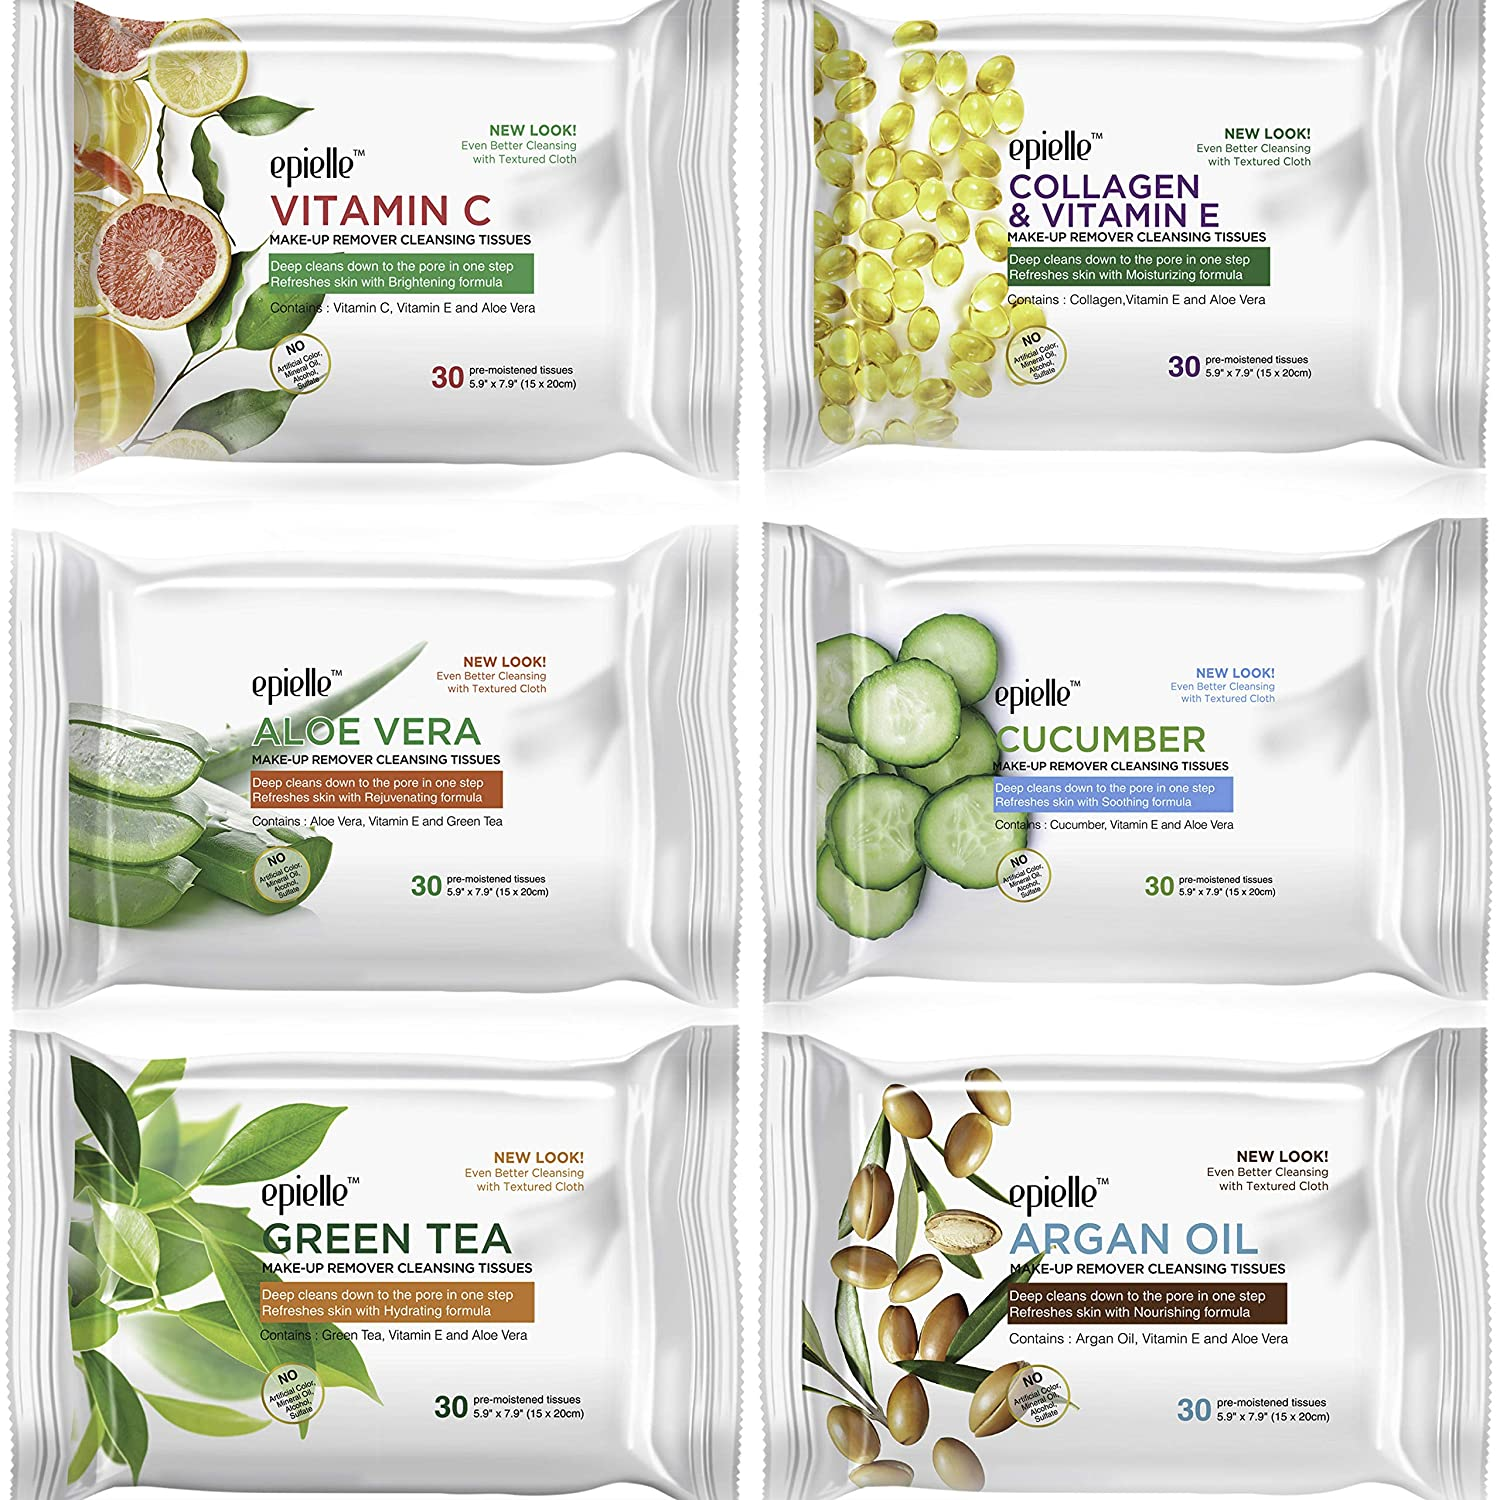 New 30ct Tissues (Assorted-6pk) 1-Vitamin C, 1-Collagen & Vitamin E, 1-Aloe Vera, 1-Cucumber, 1-Green Tea, 1-Argan Oil